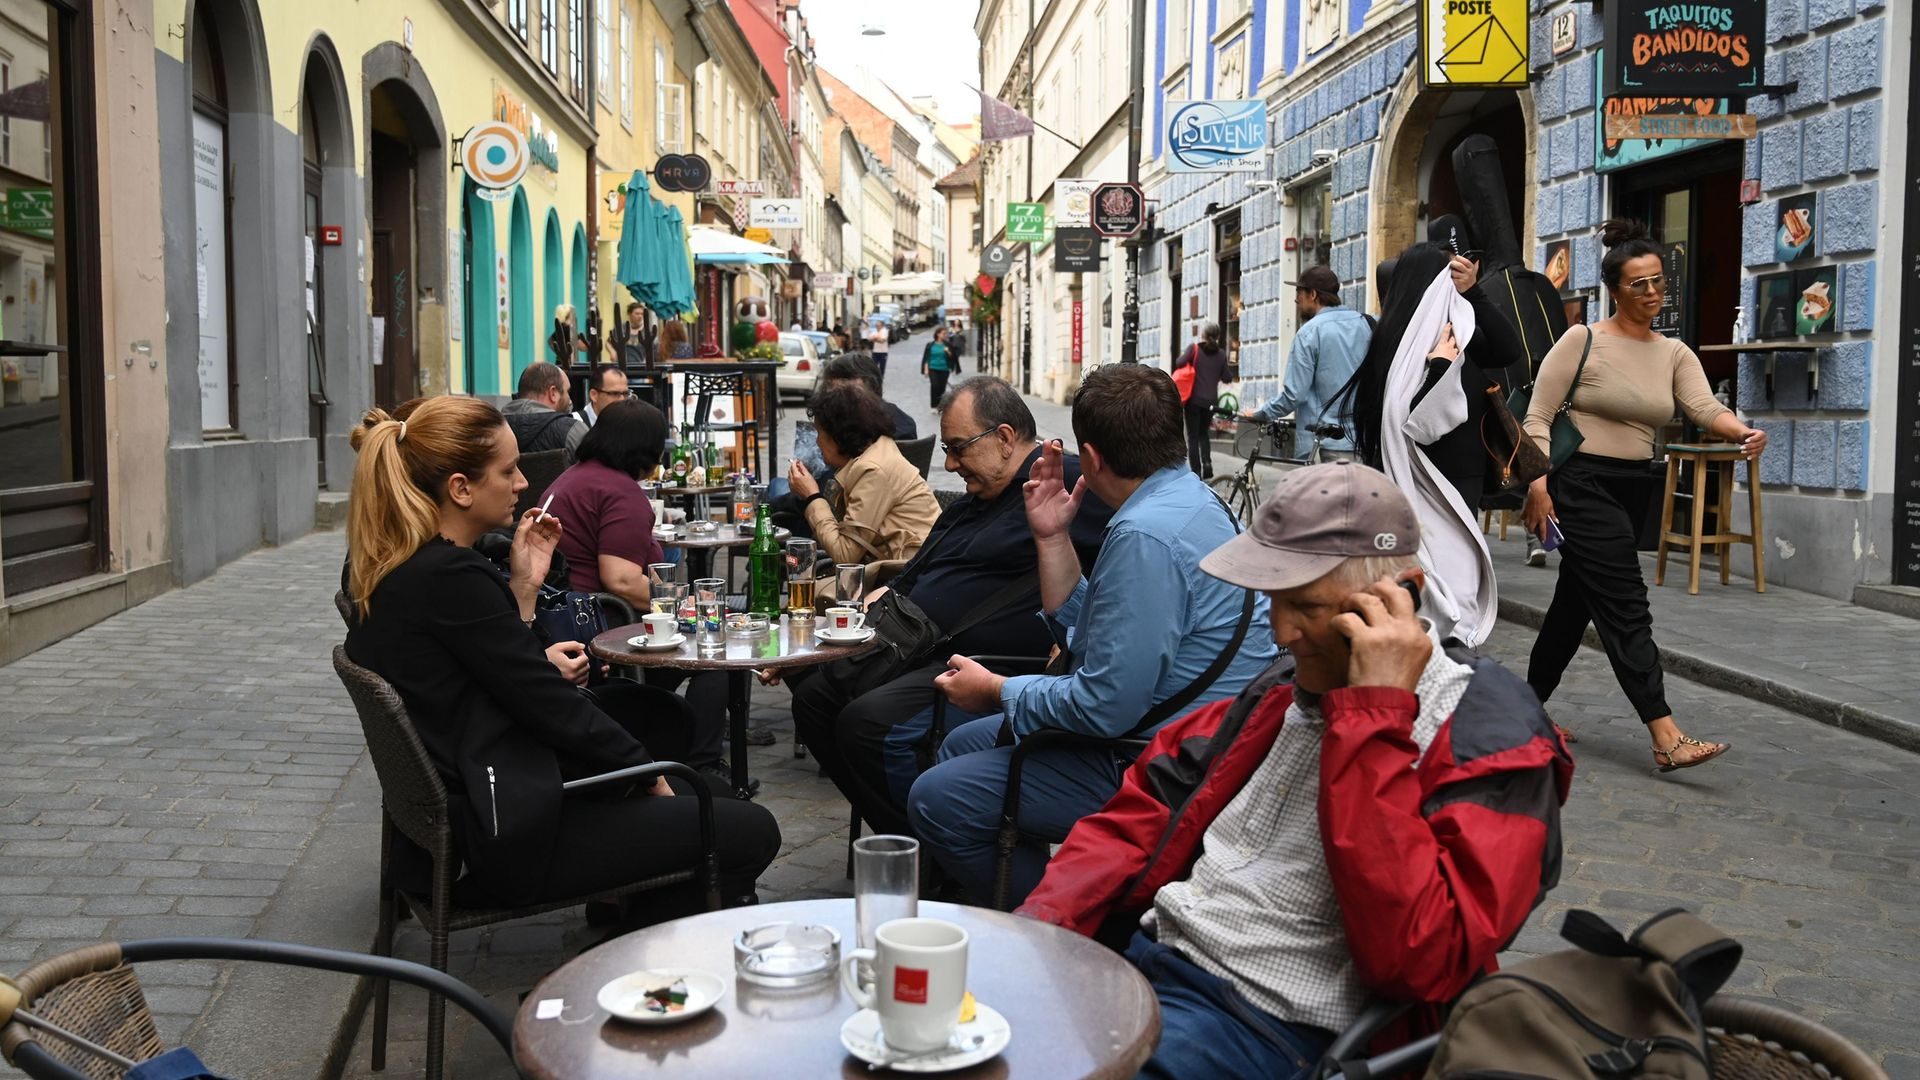 CAFE CULTURE: Customers on the terrace of a cafe in Zagreb, in May 2020. Such establishments offer a popular venue for political discussion and debate across central and southern Europe - Credit: AFP via Getty Images